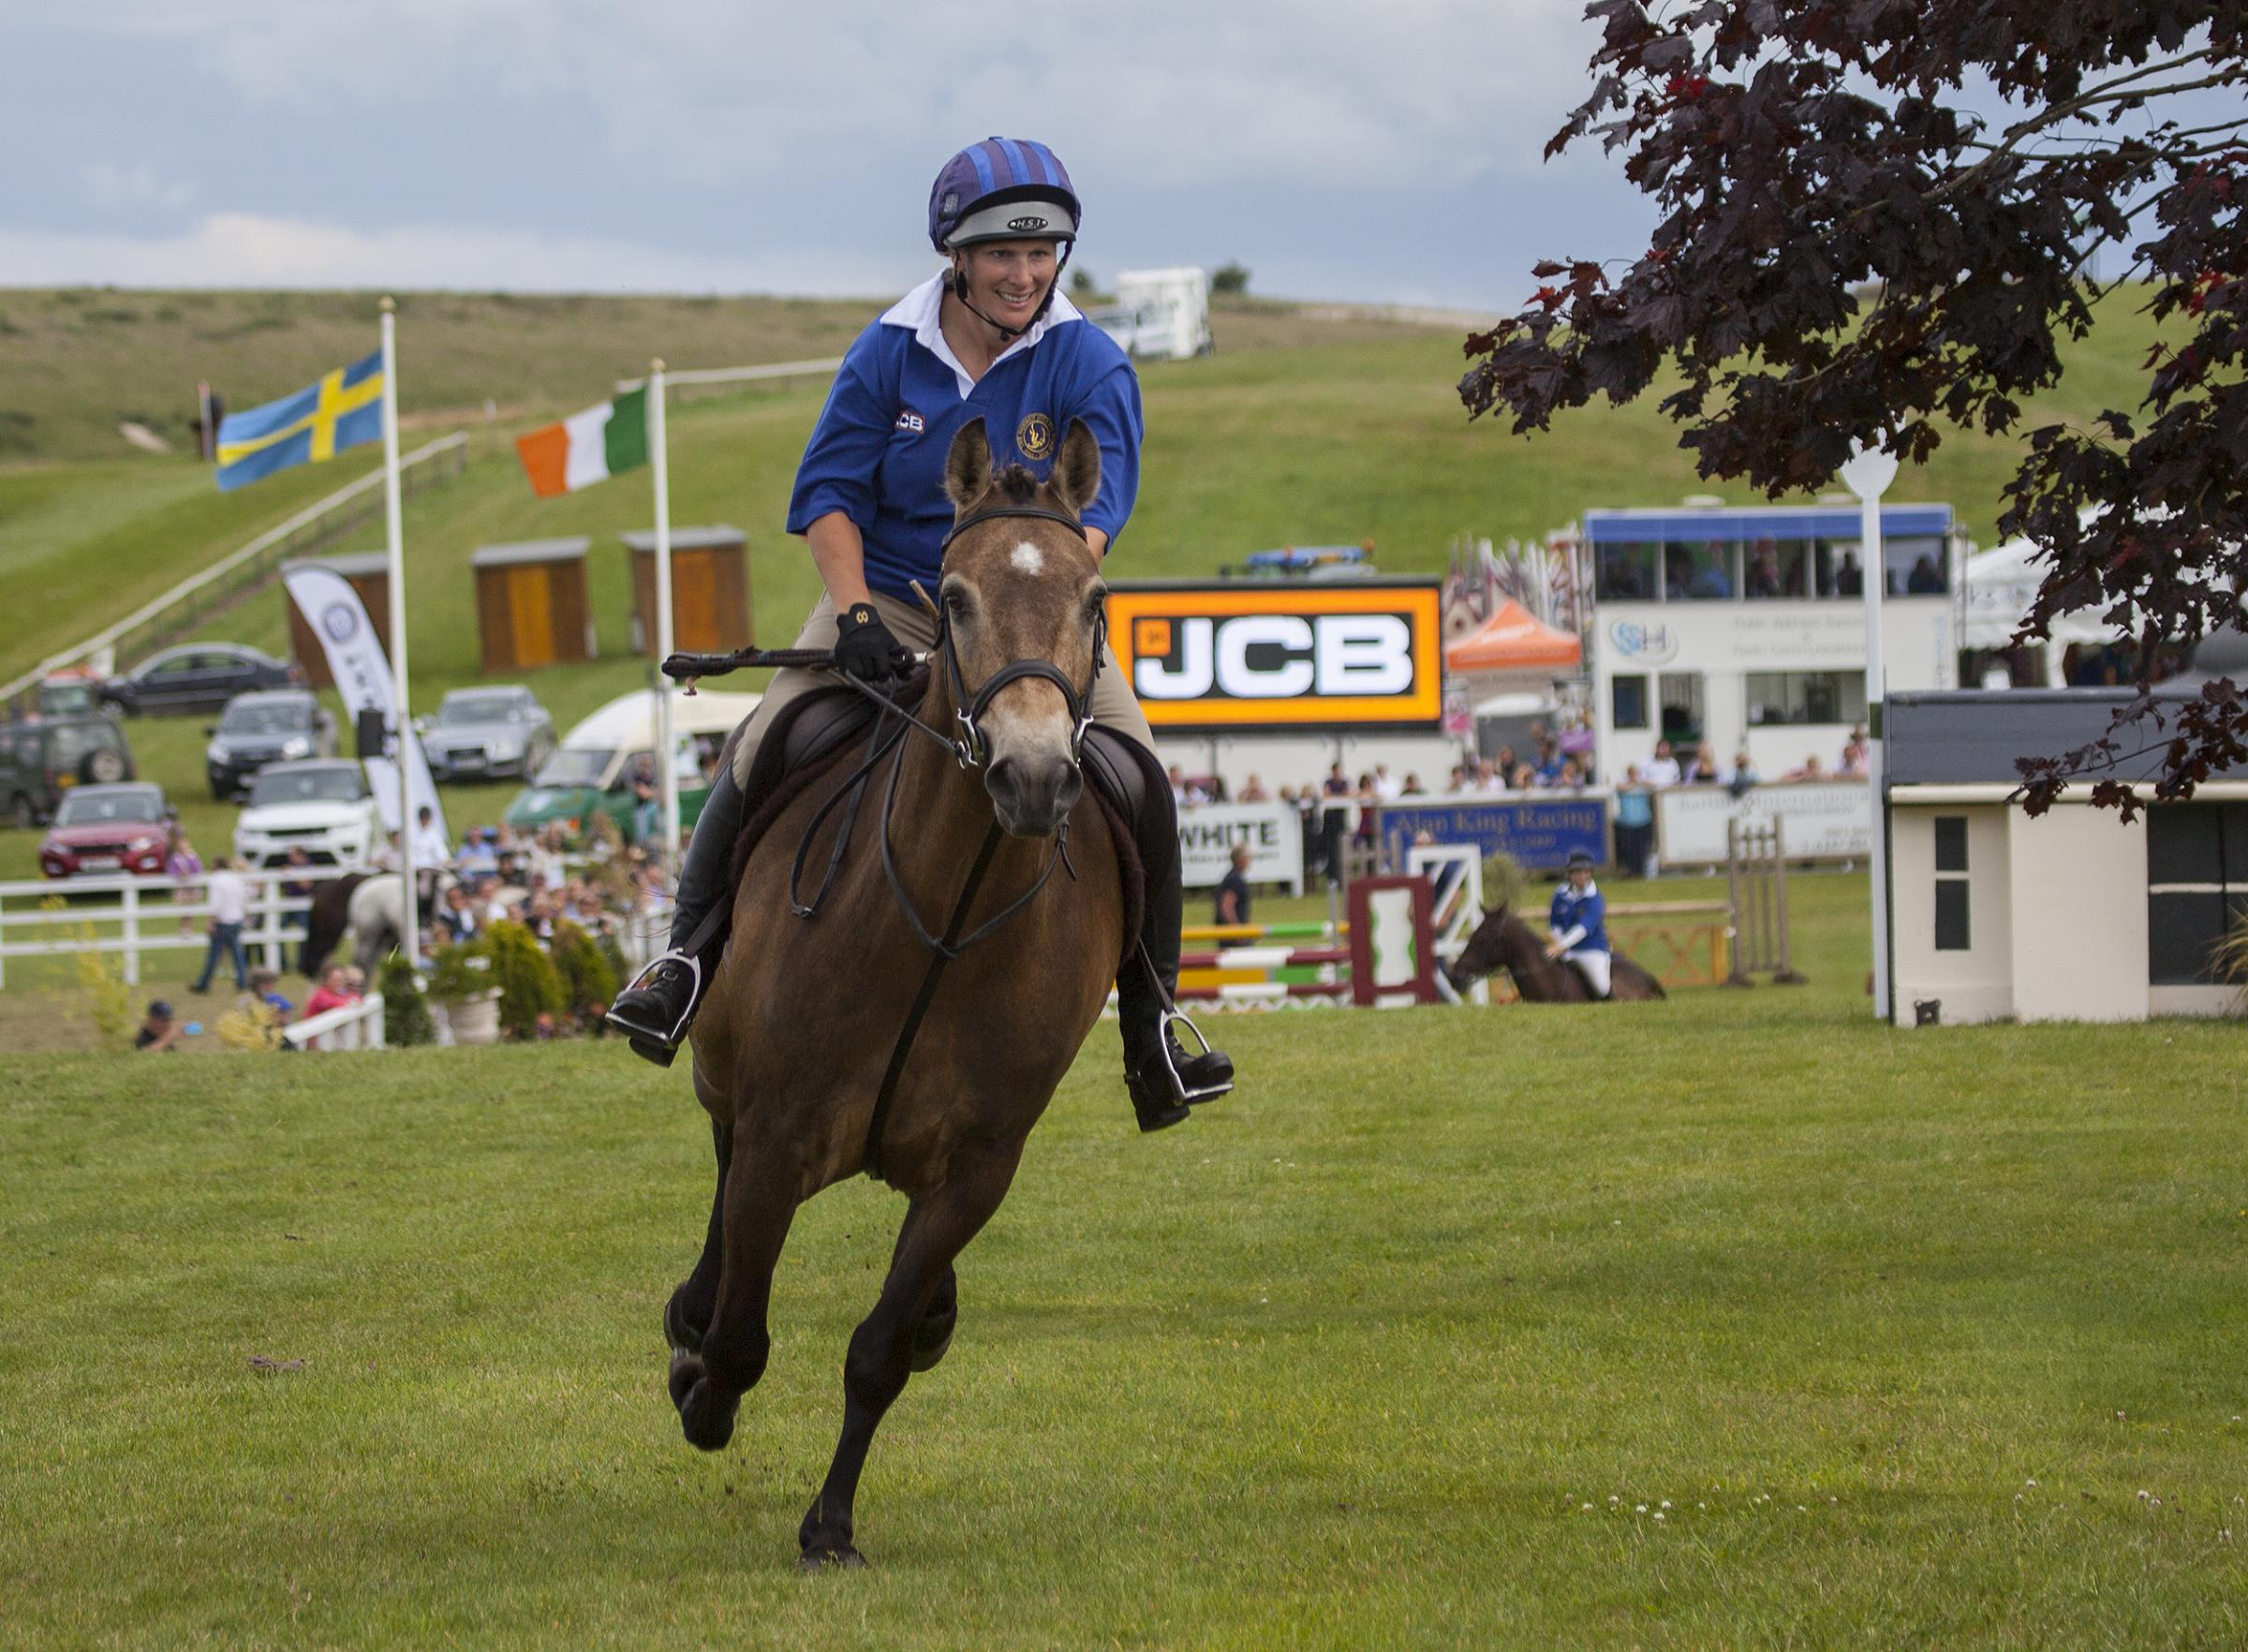 Zara Tindall captains the Event riders in the JCB Champions Challenge at Barbury